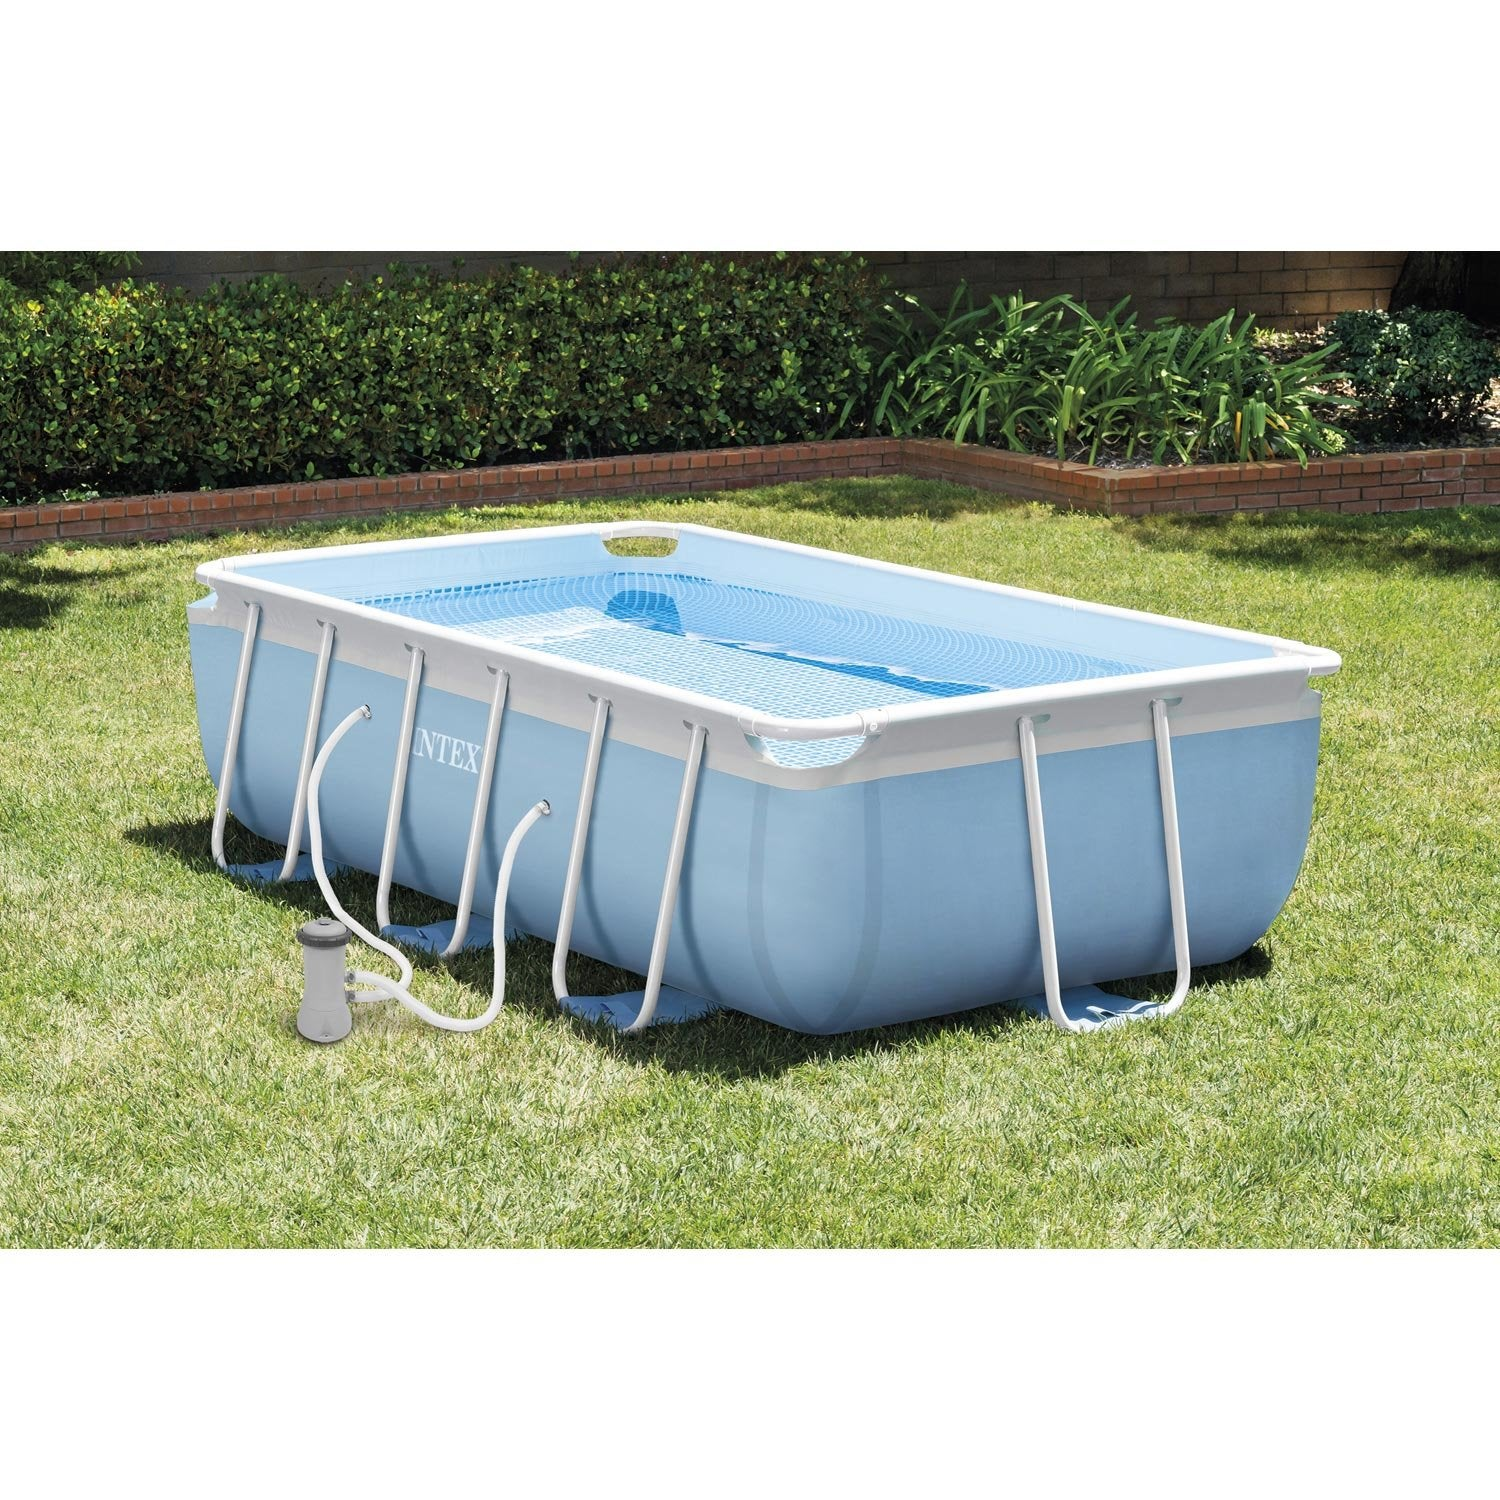 Piscine hors sol autoportante tubulaire intex l 3 4 x l 2 for Sol piscine